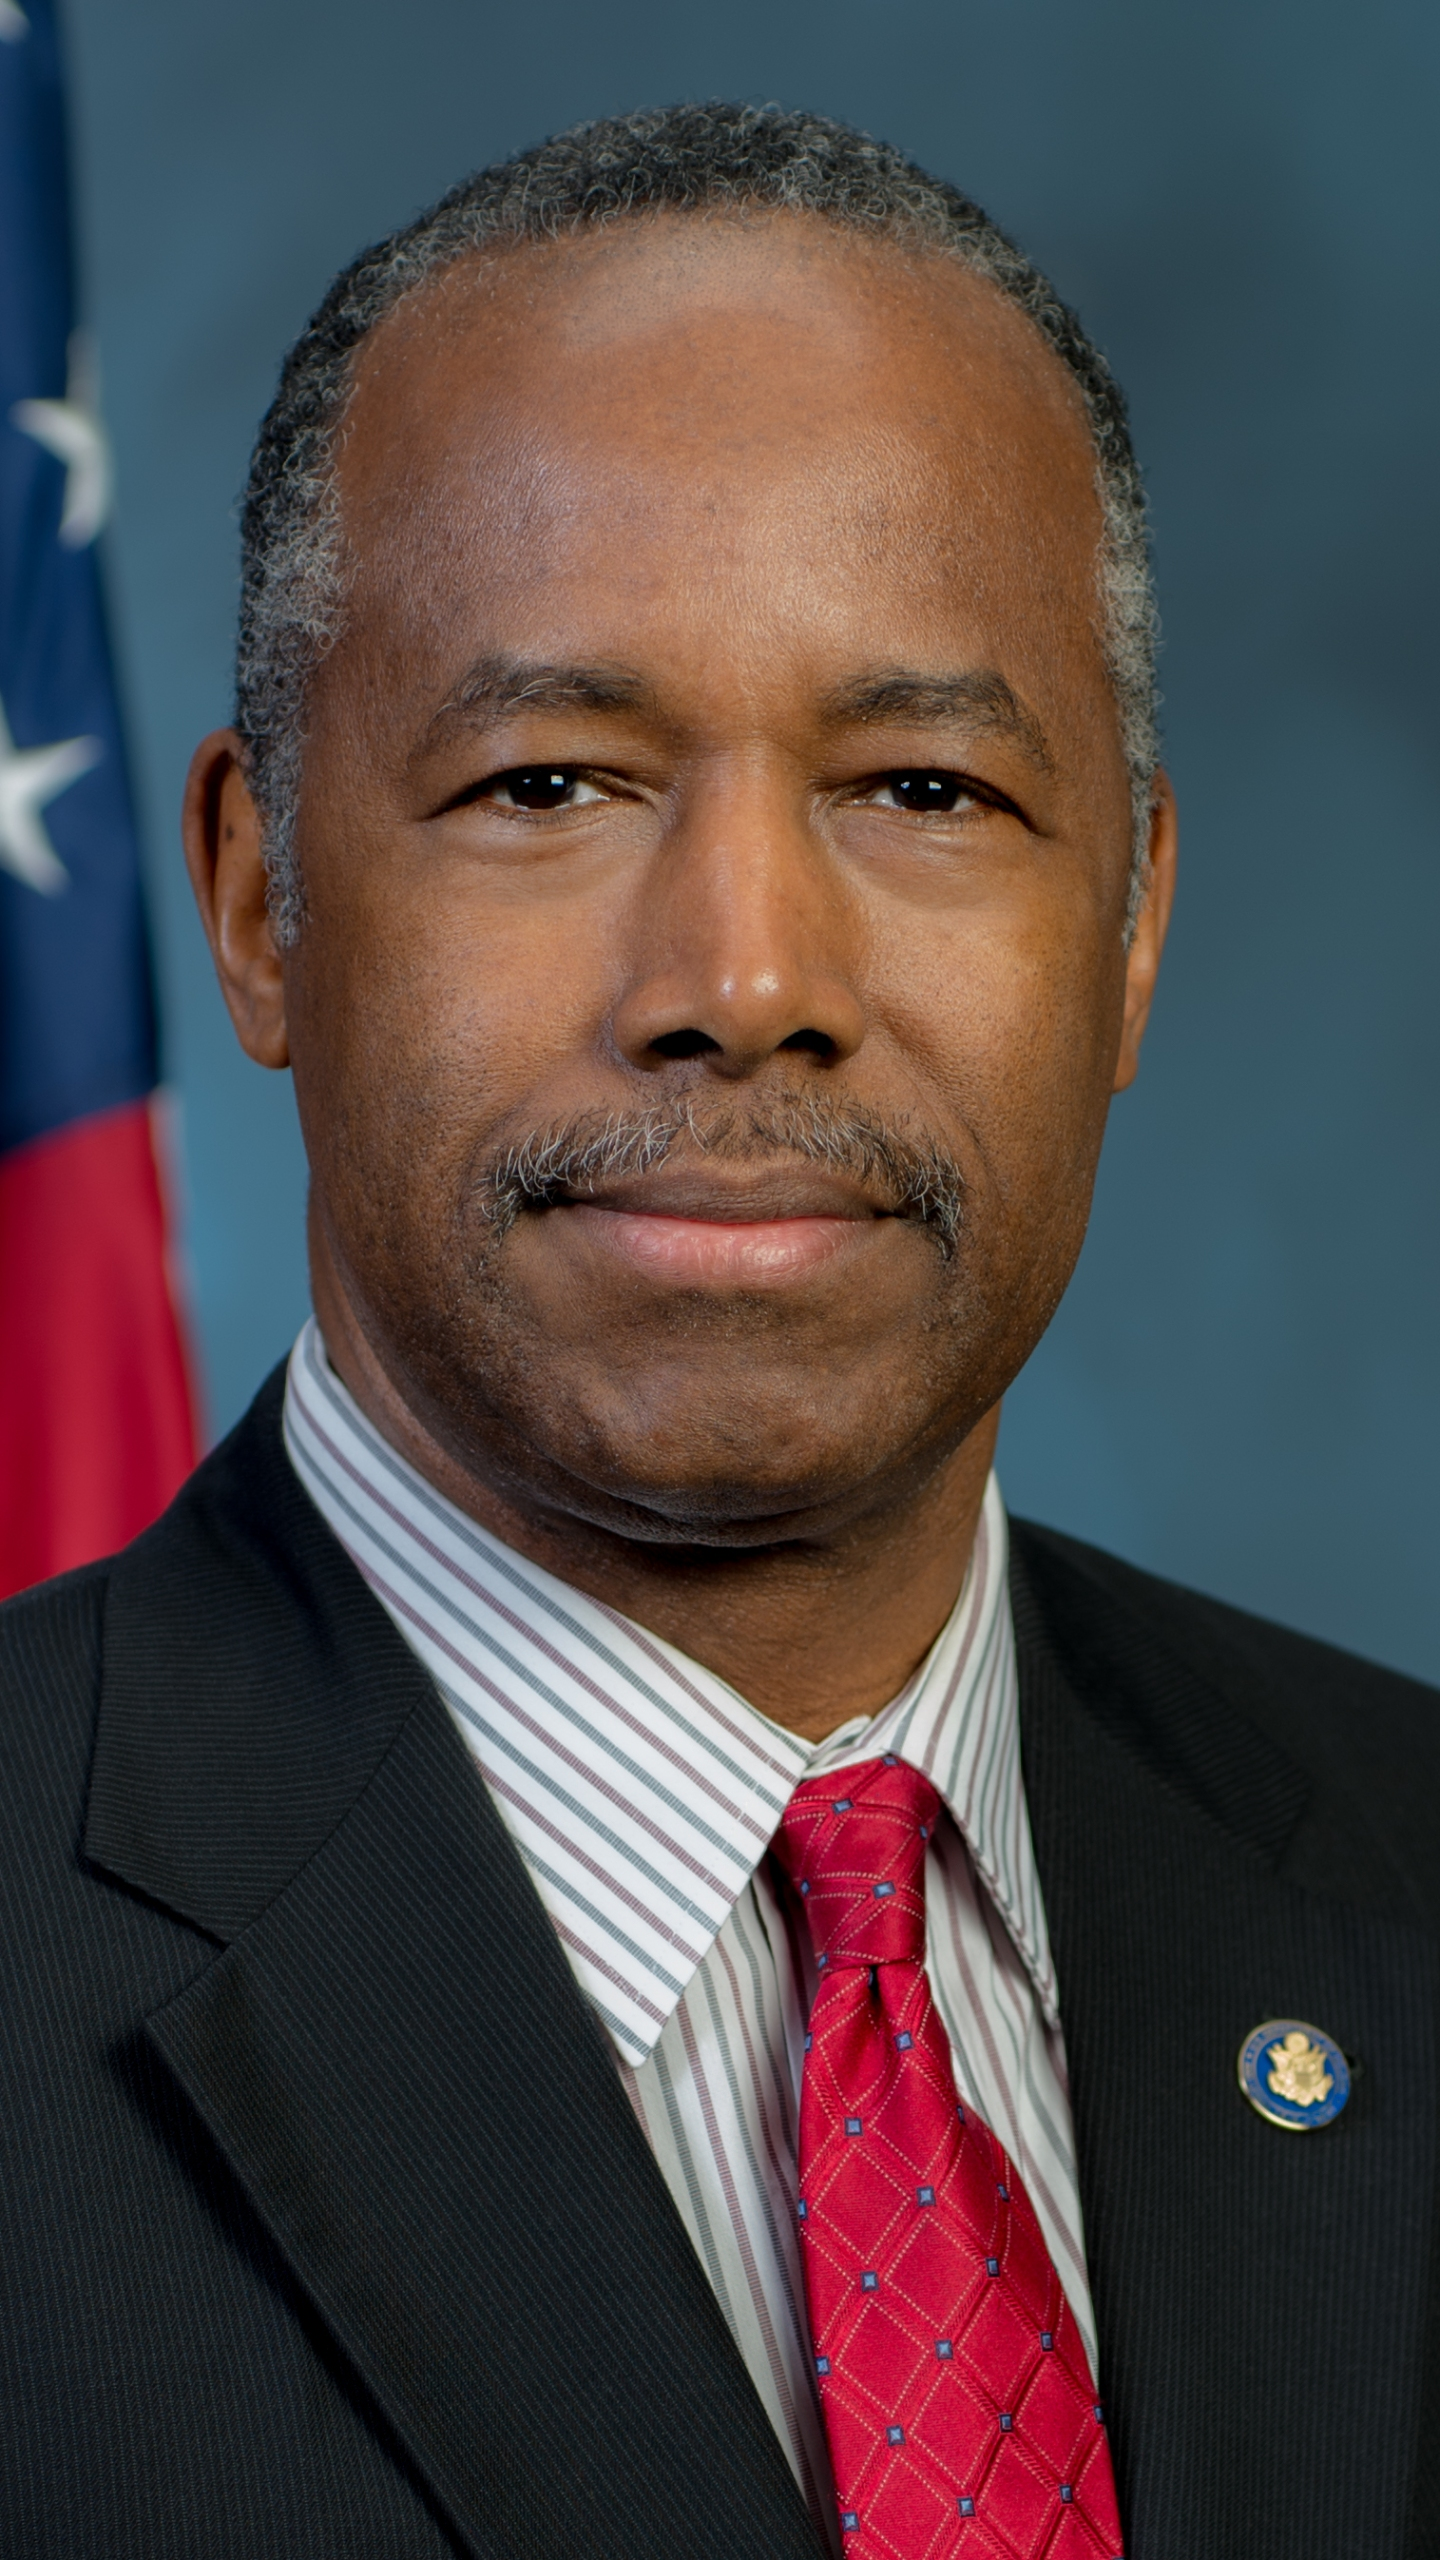 U.S. Department of Housing and Urban Development Secretary Dr. Ben Carson